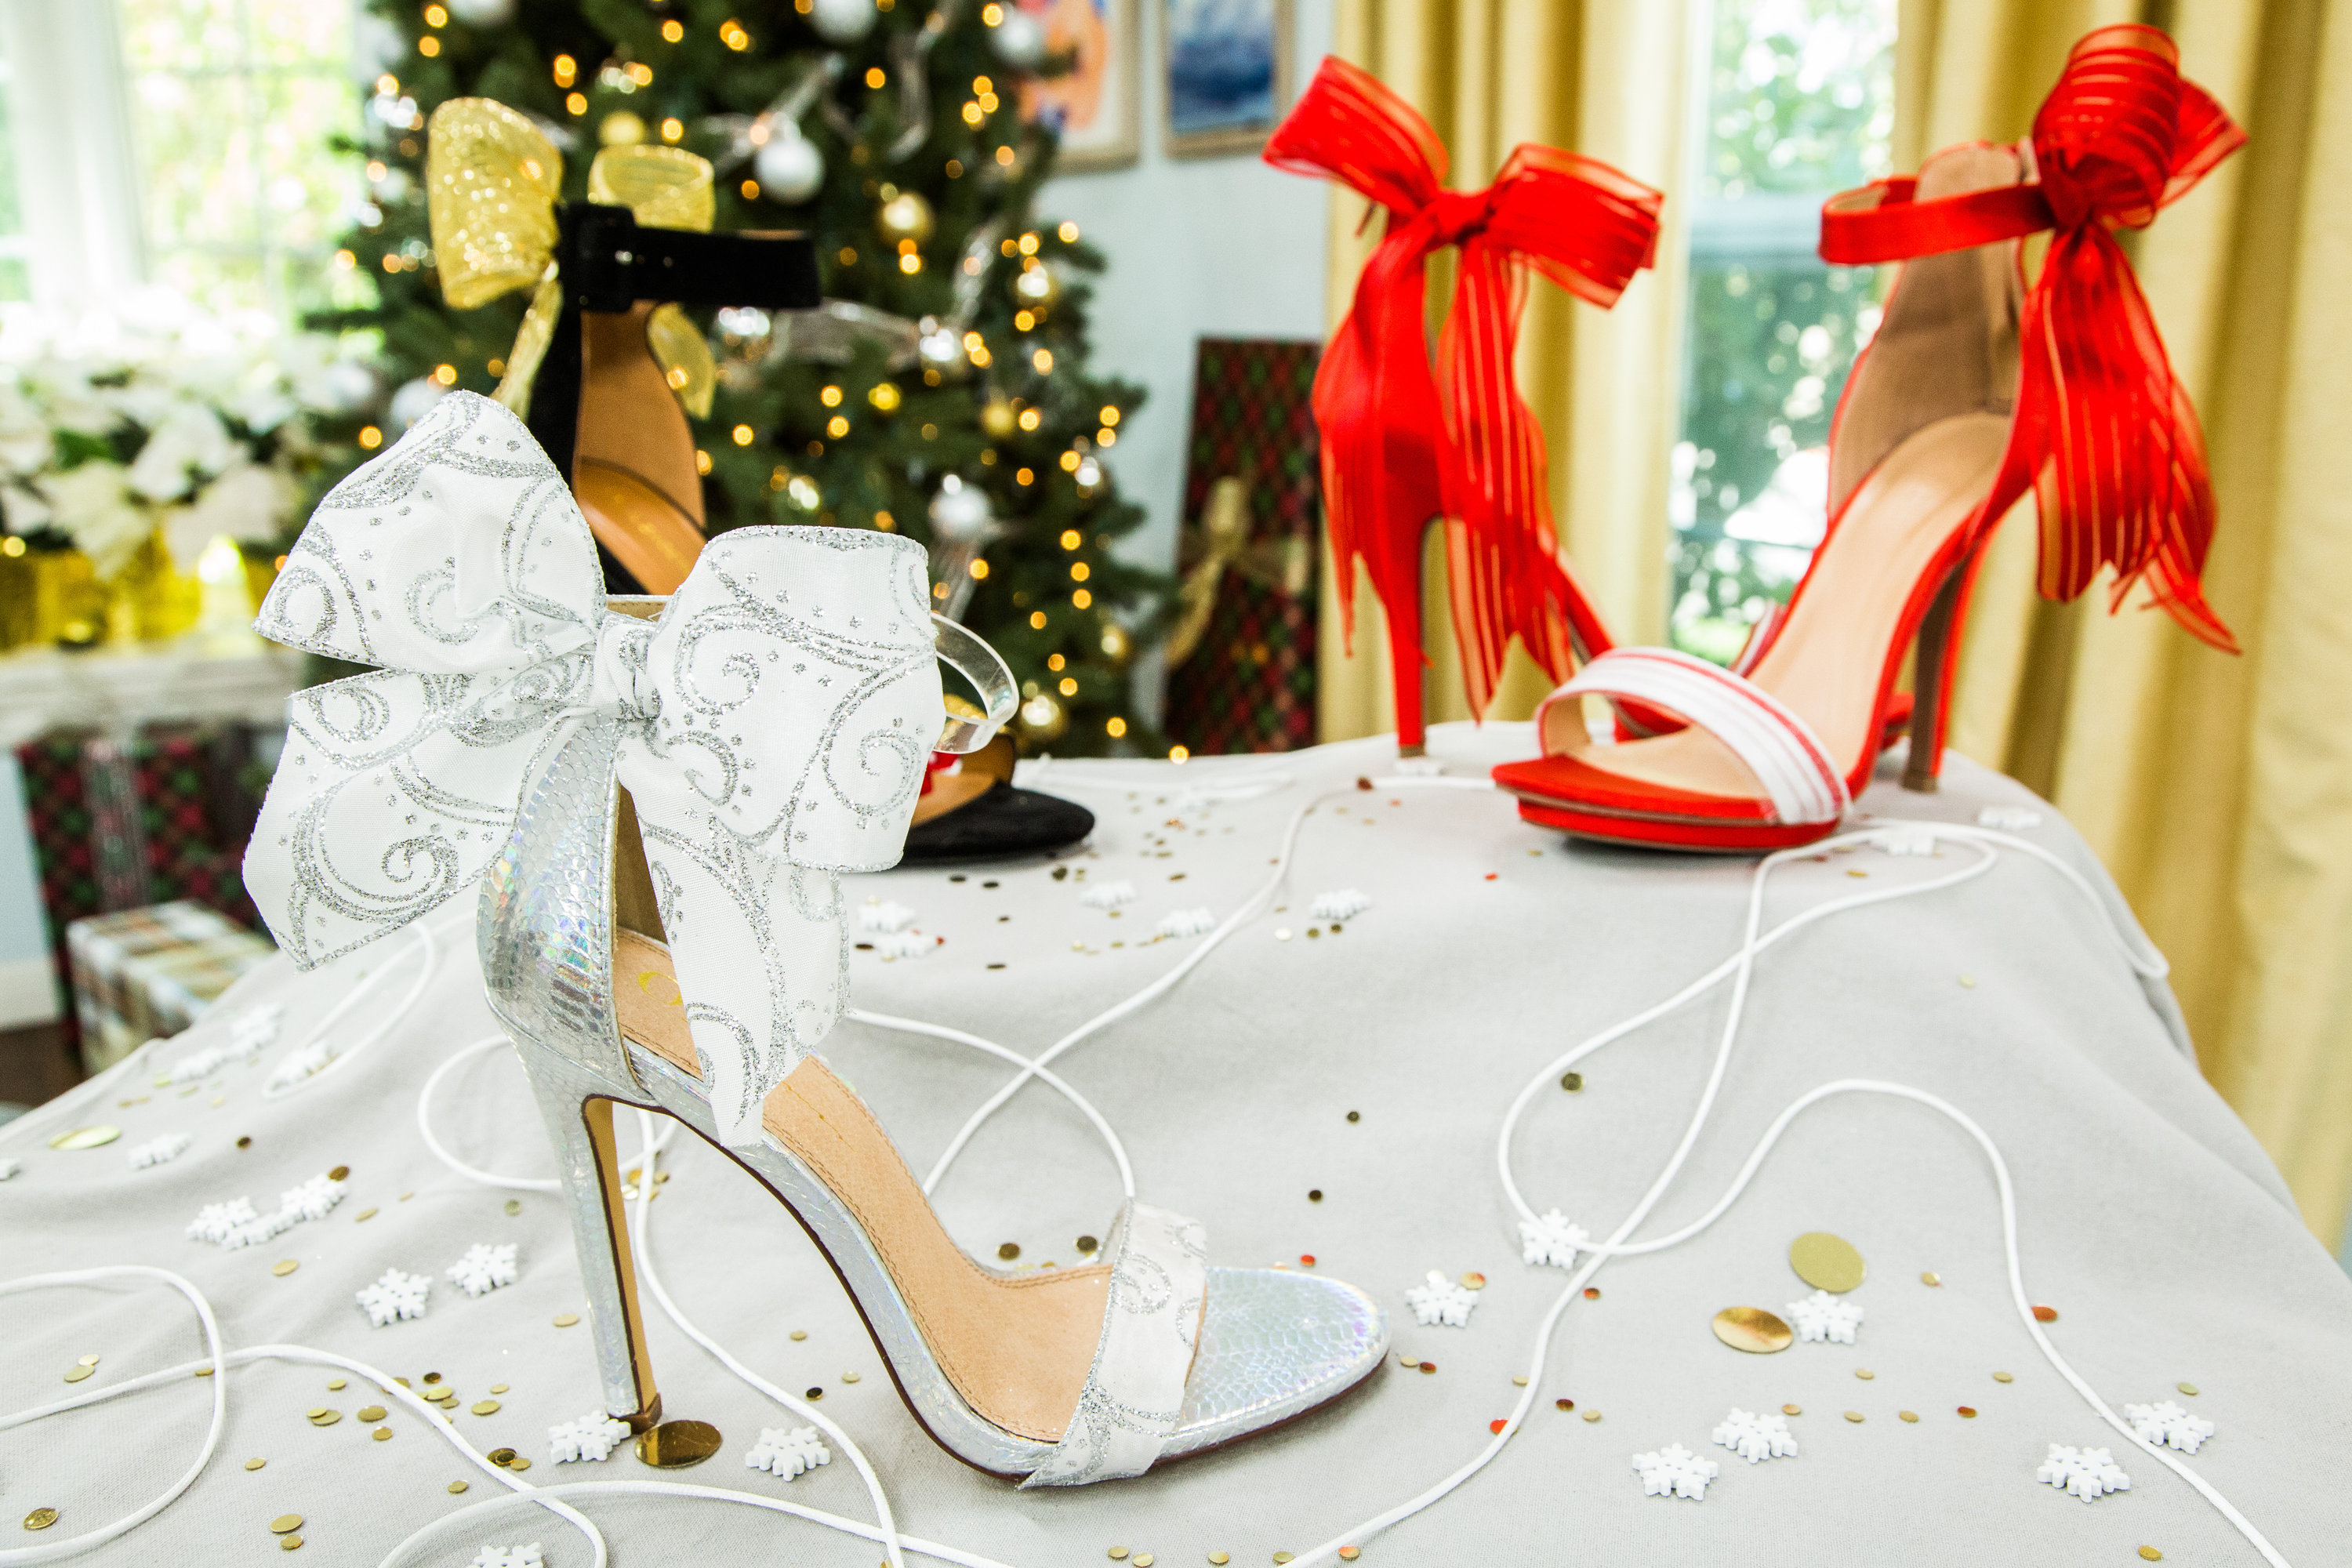 How to diy christmas present heels hallmark channel